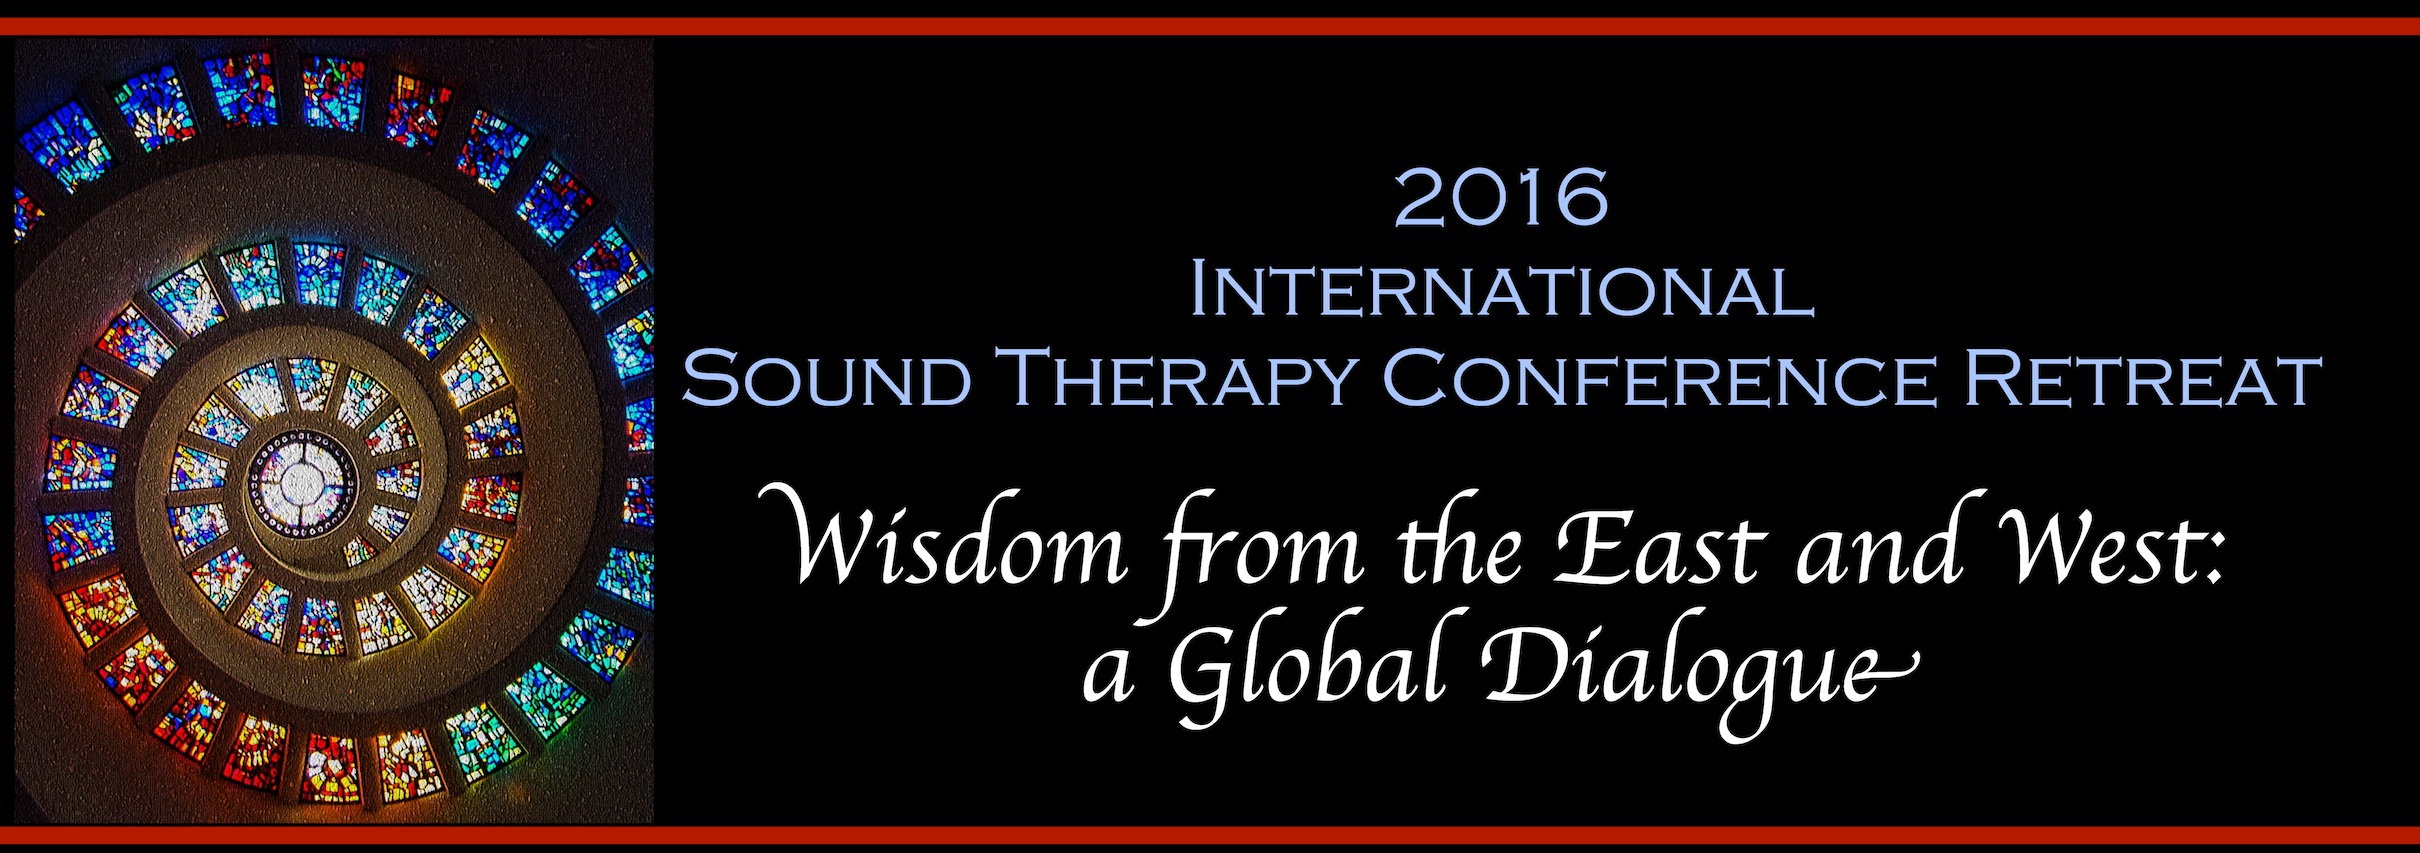 International Sound Therapy Conference Retreat